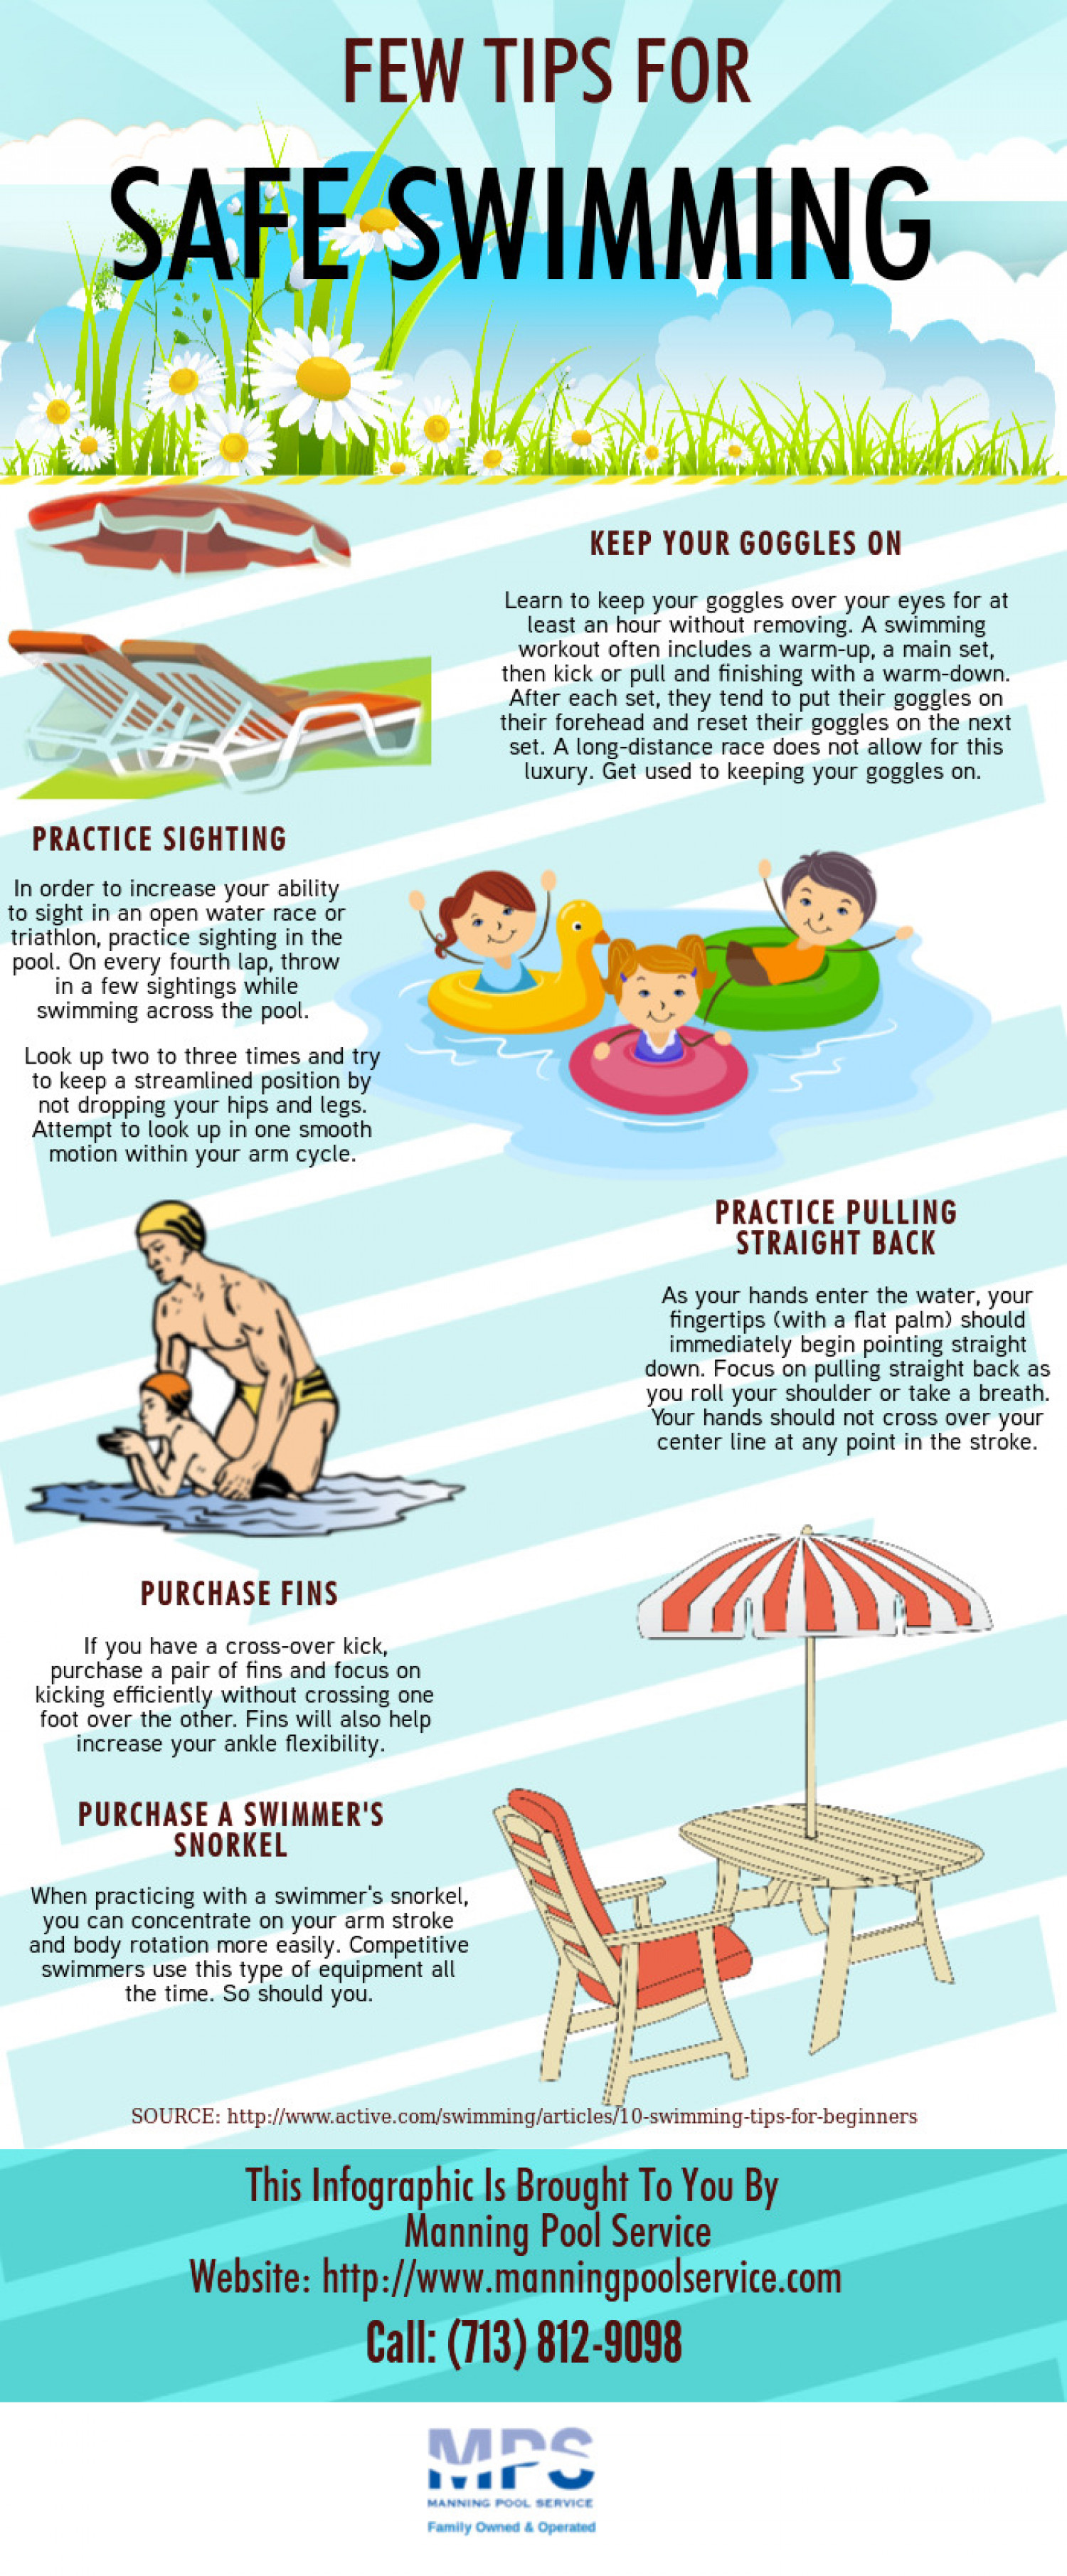 Few Tips For Safe Swimming Infographic